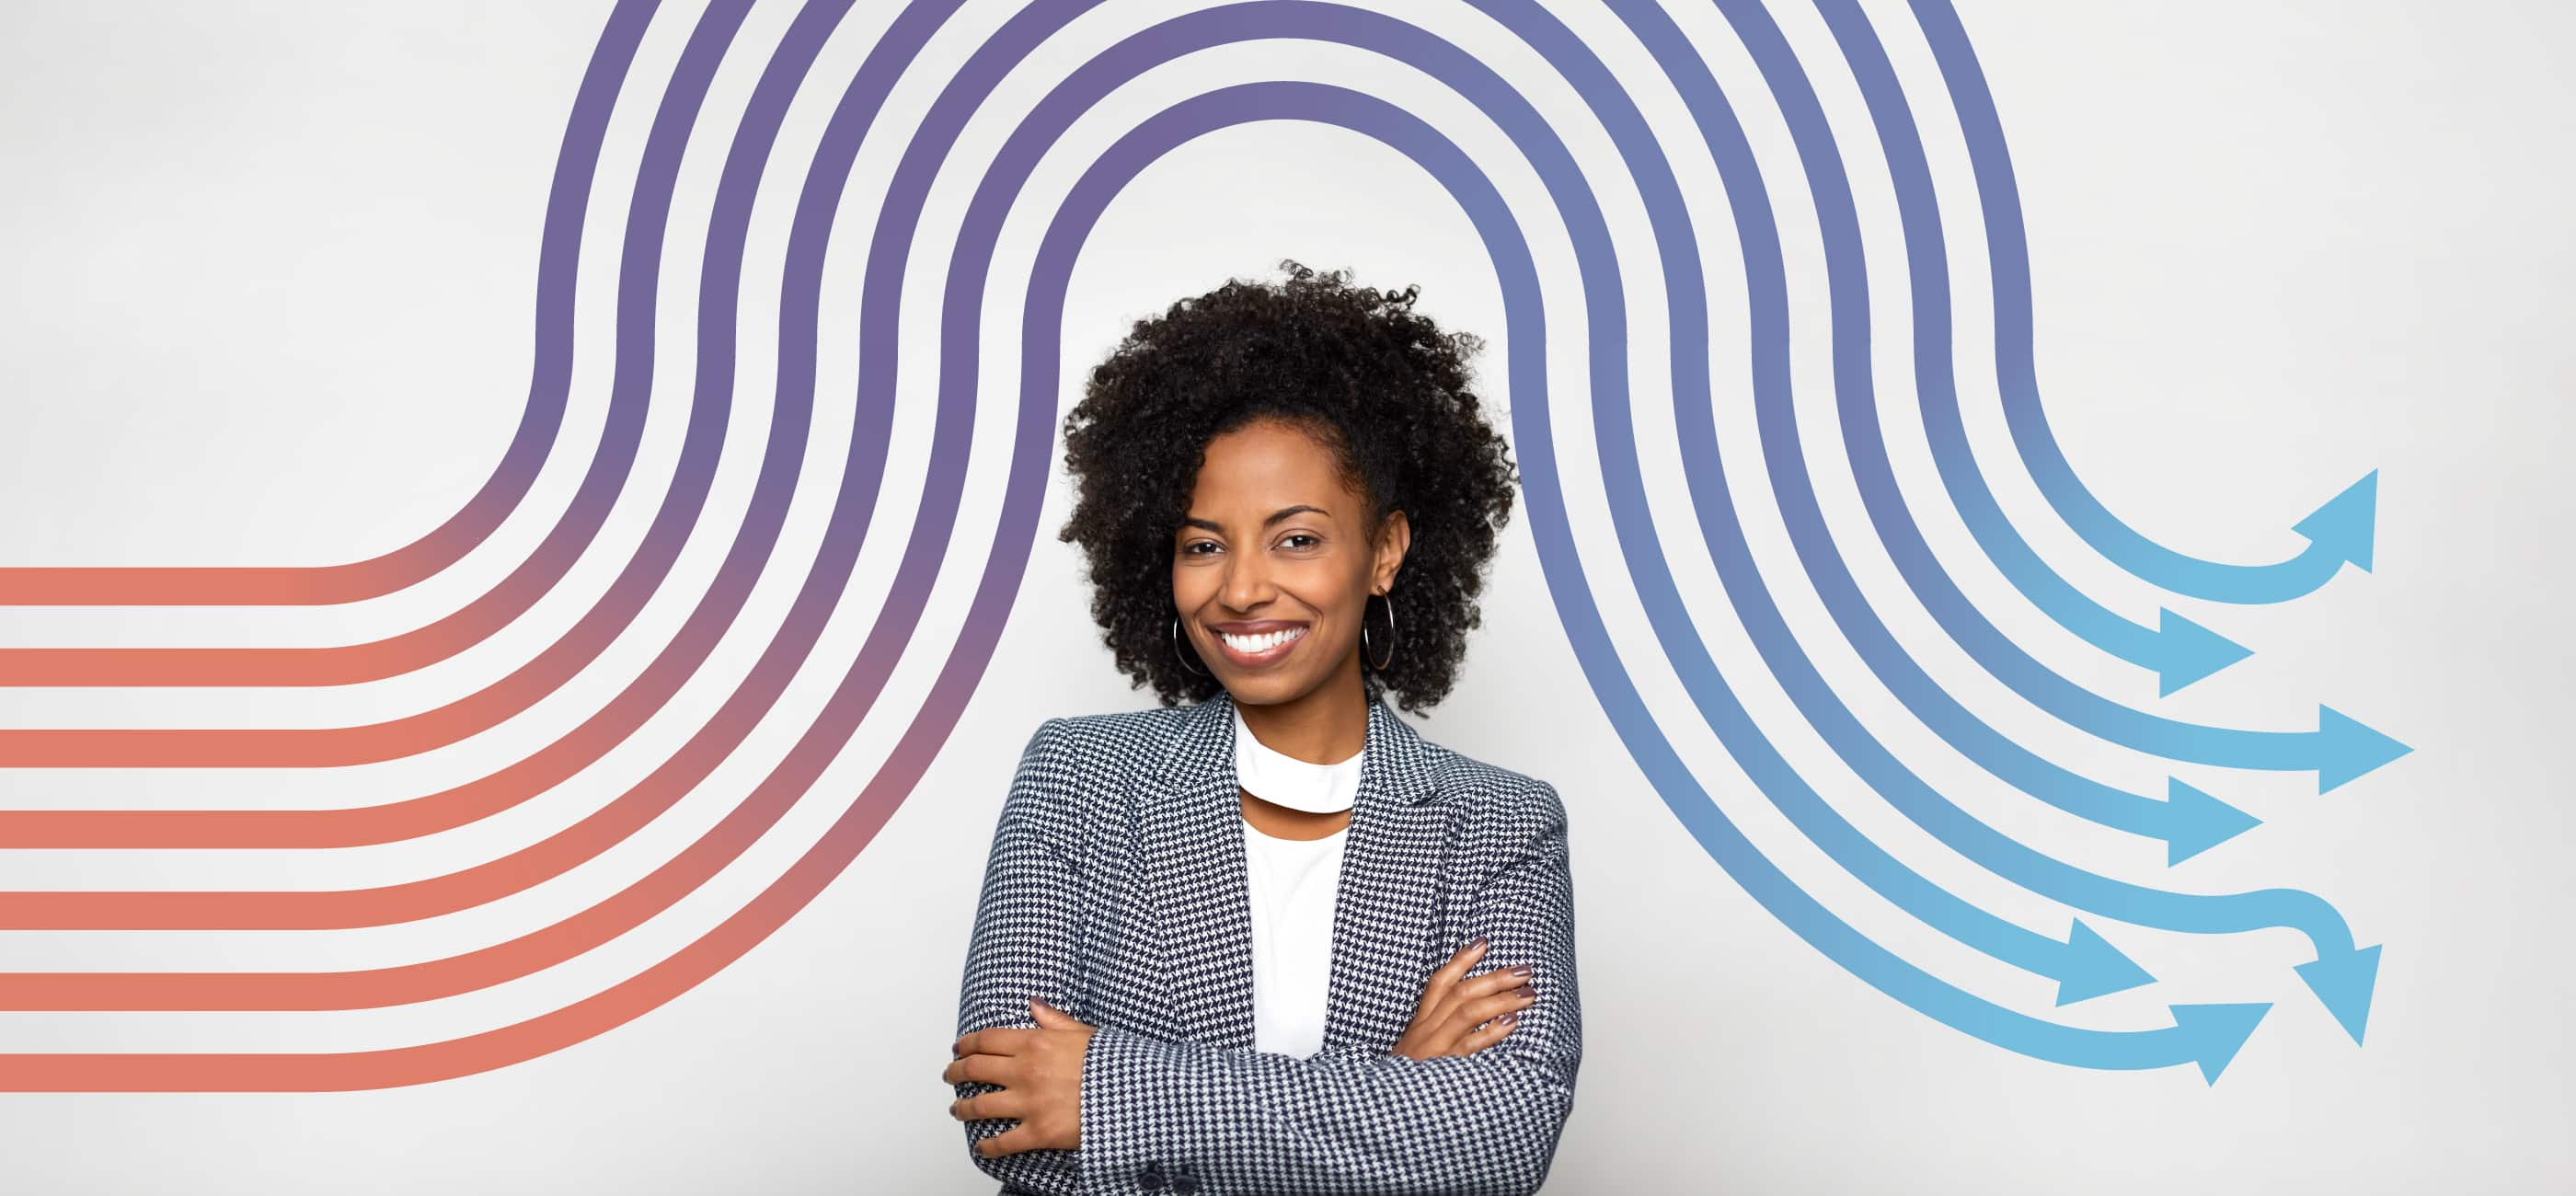 Image of an African American female professional auto insurance broker on grey background with a wavy graphic above her